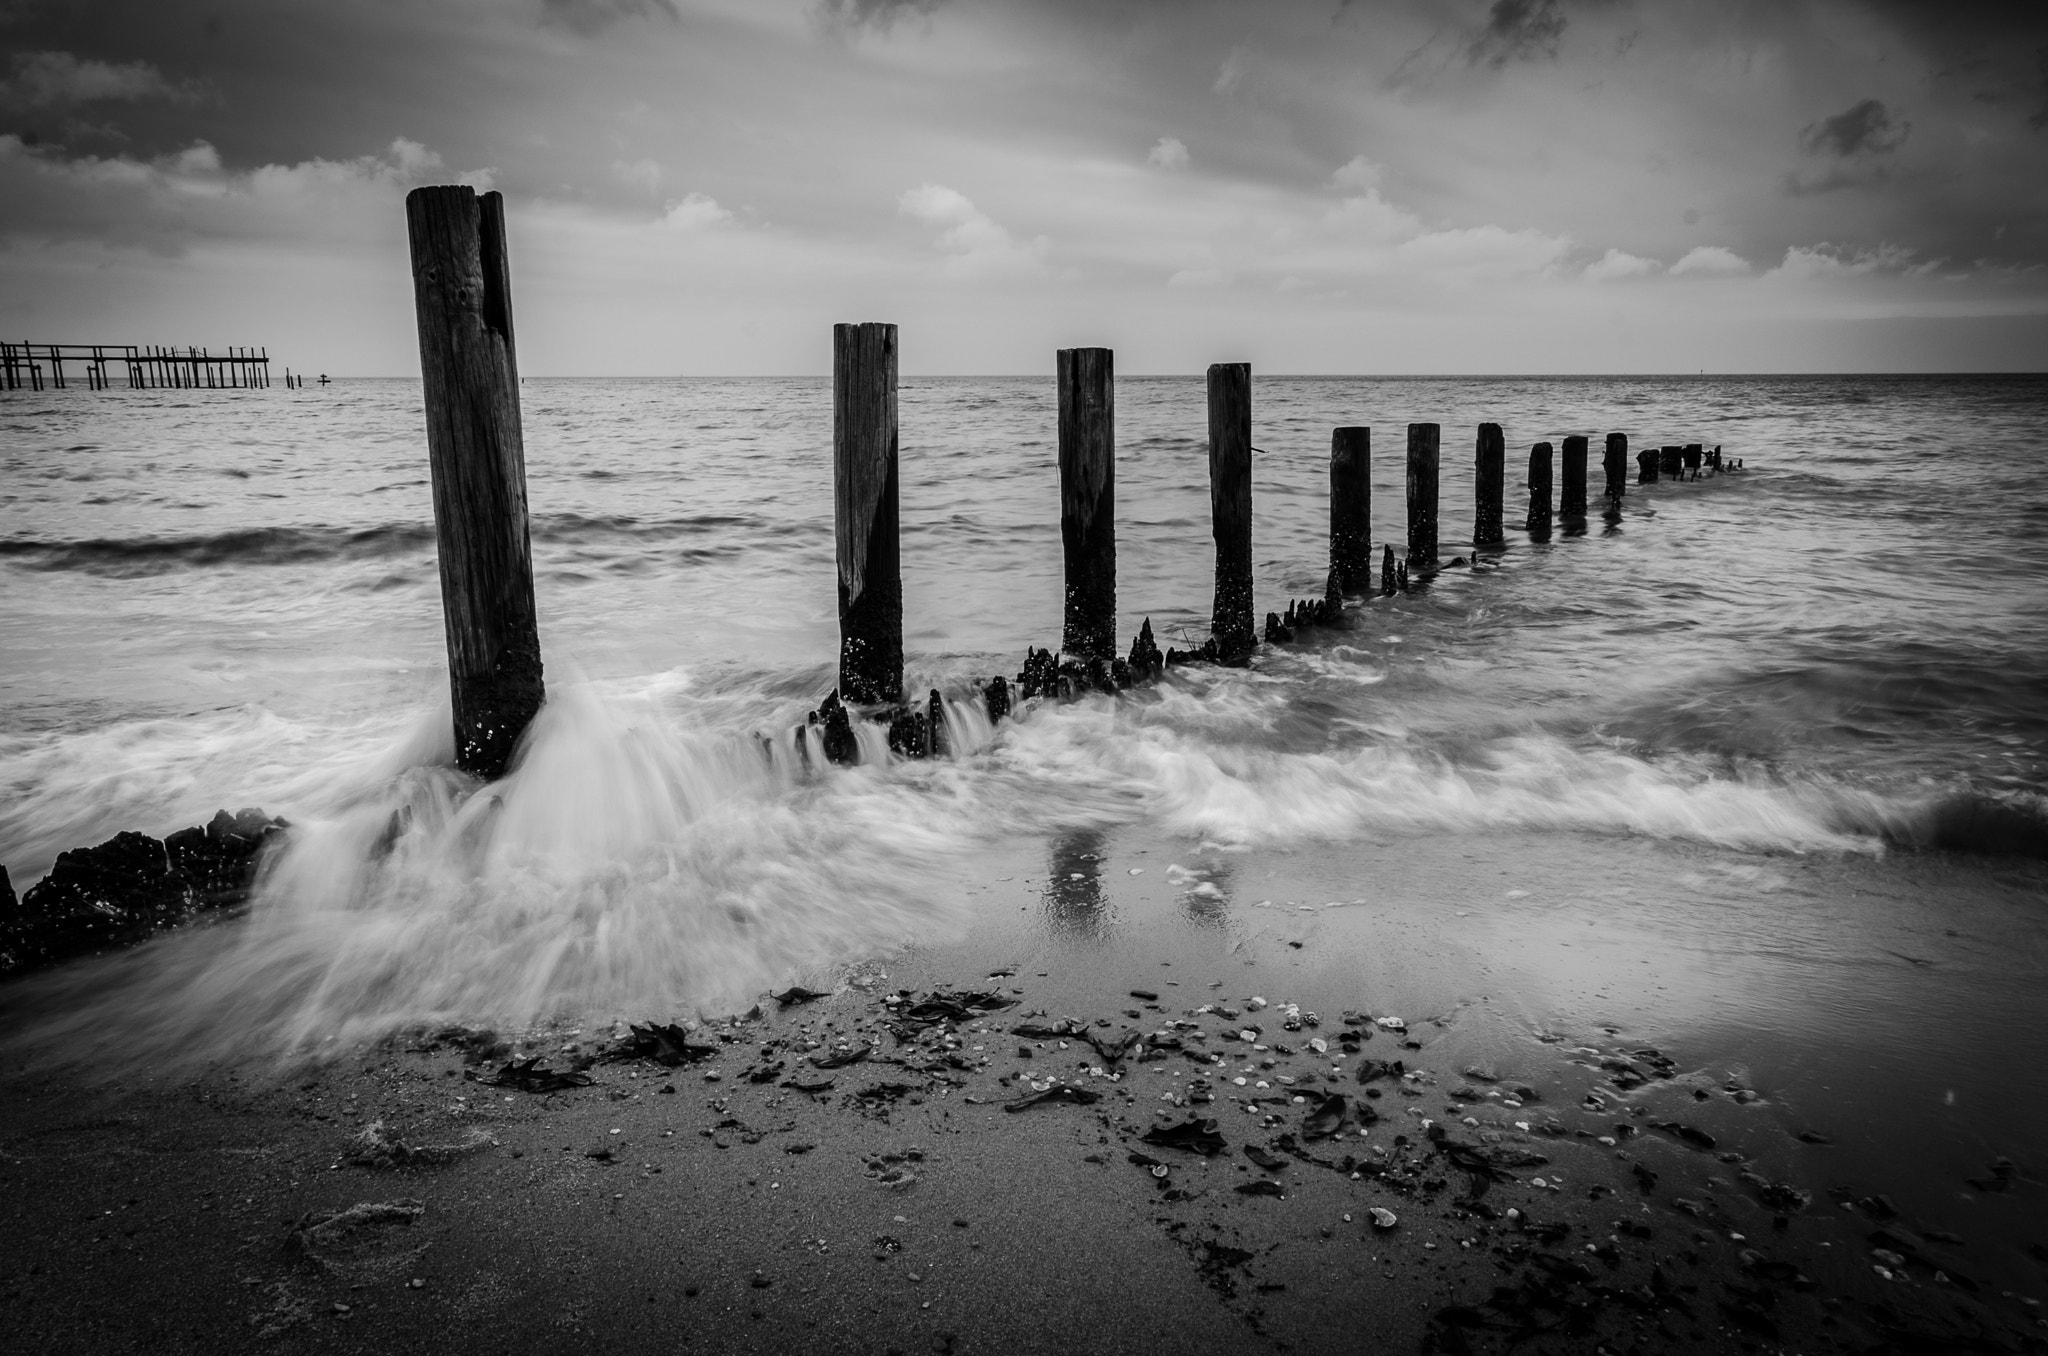 Photograph Near Fairhope Pier by Richard Dollison on 500px